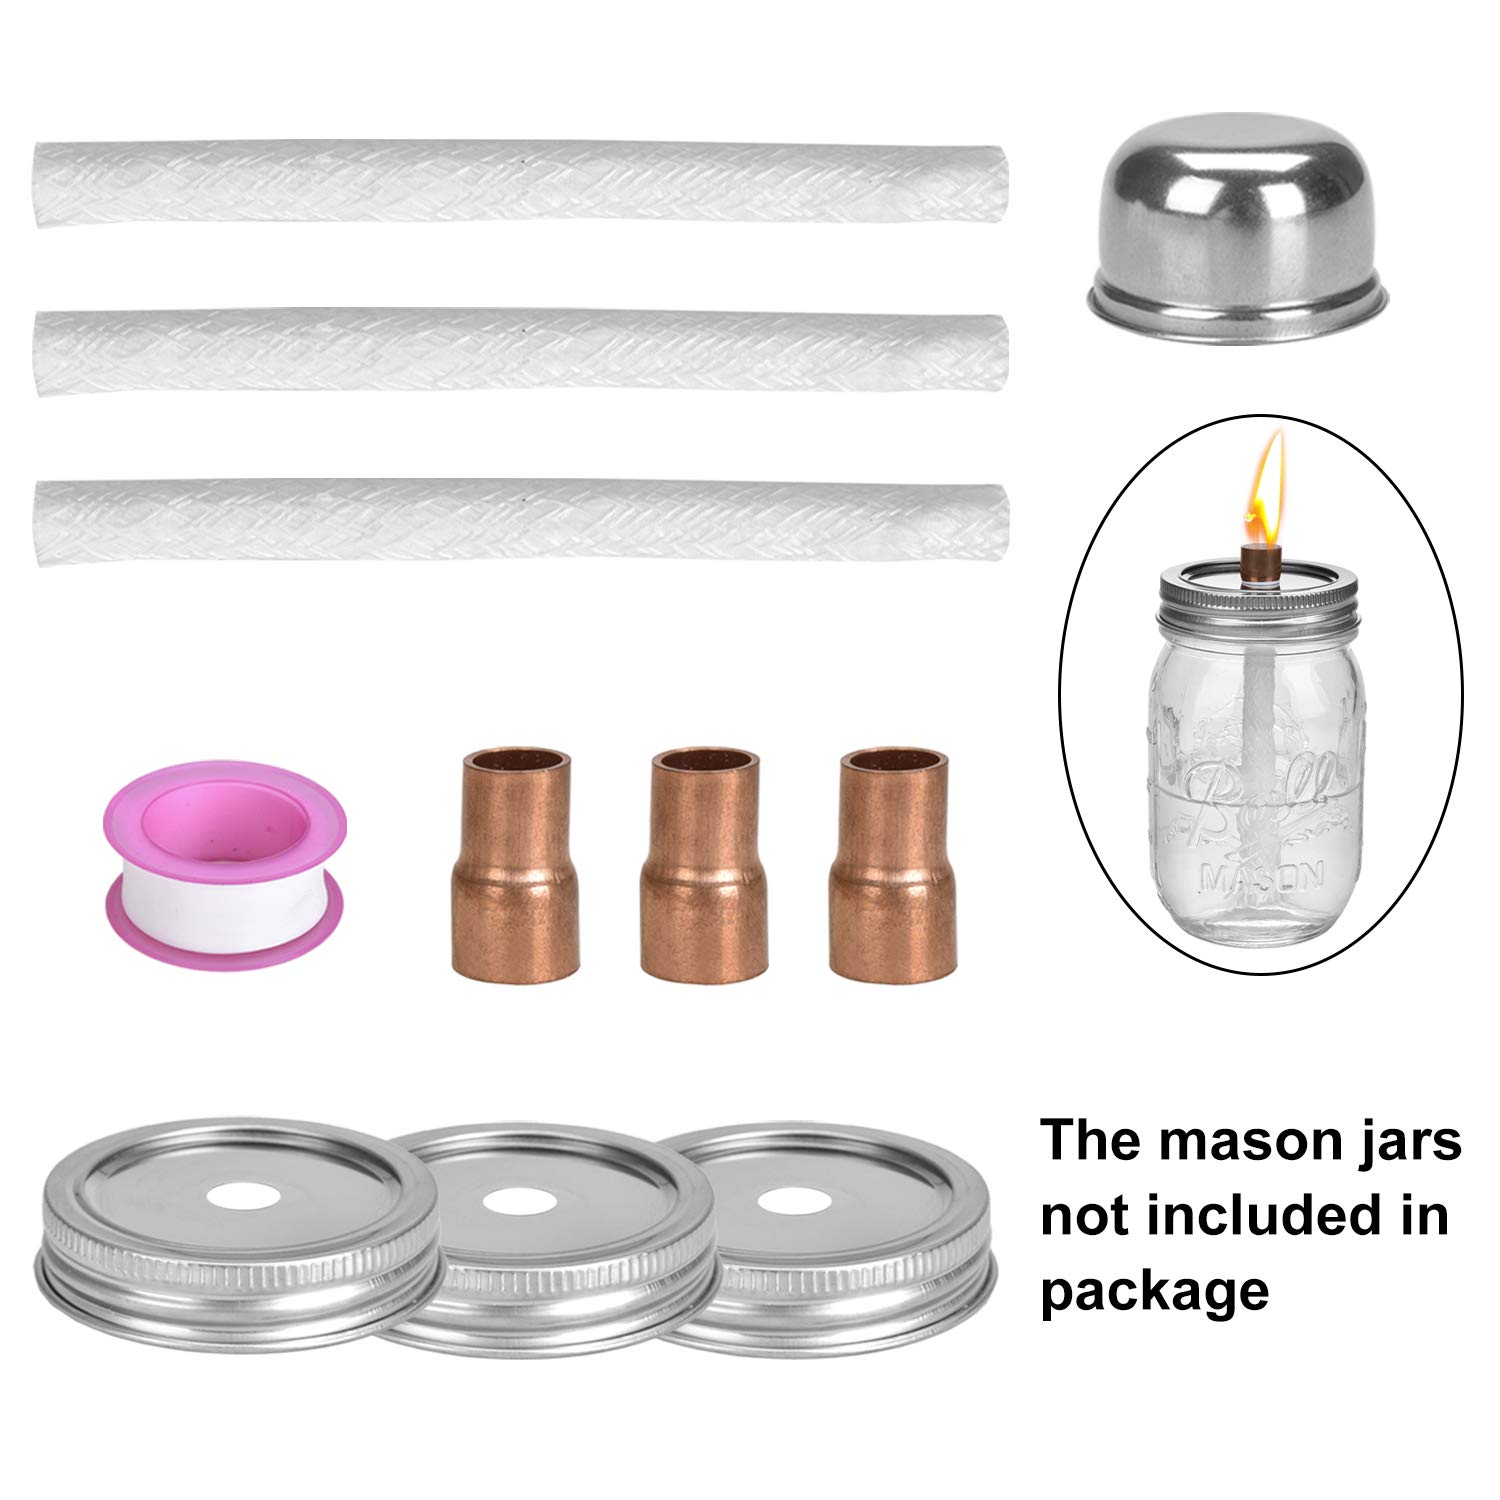 Mason Jar Tabletop Torch Kits,Table Torches Wicks Oil Lamp Torch for Regular Mouth Mason Jar,Outdoor Torch Light for Patio Garden Decor 4 Fiberglass Wicks,4 Stainless Steel Lids /& 4 Fire Cover Caps